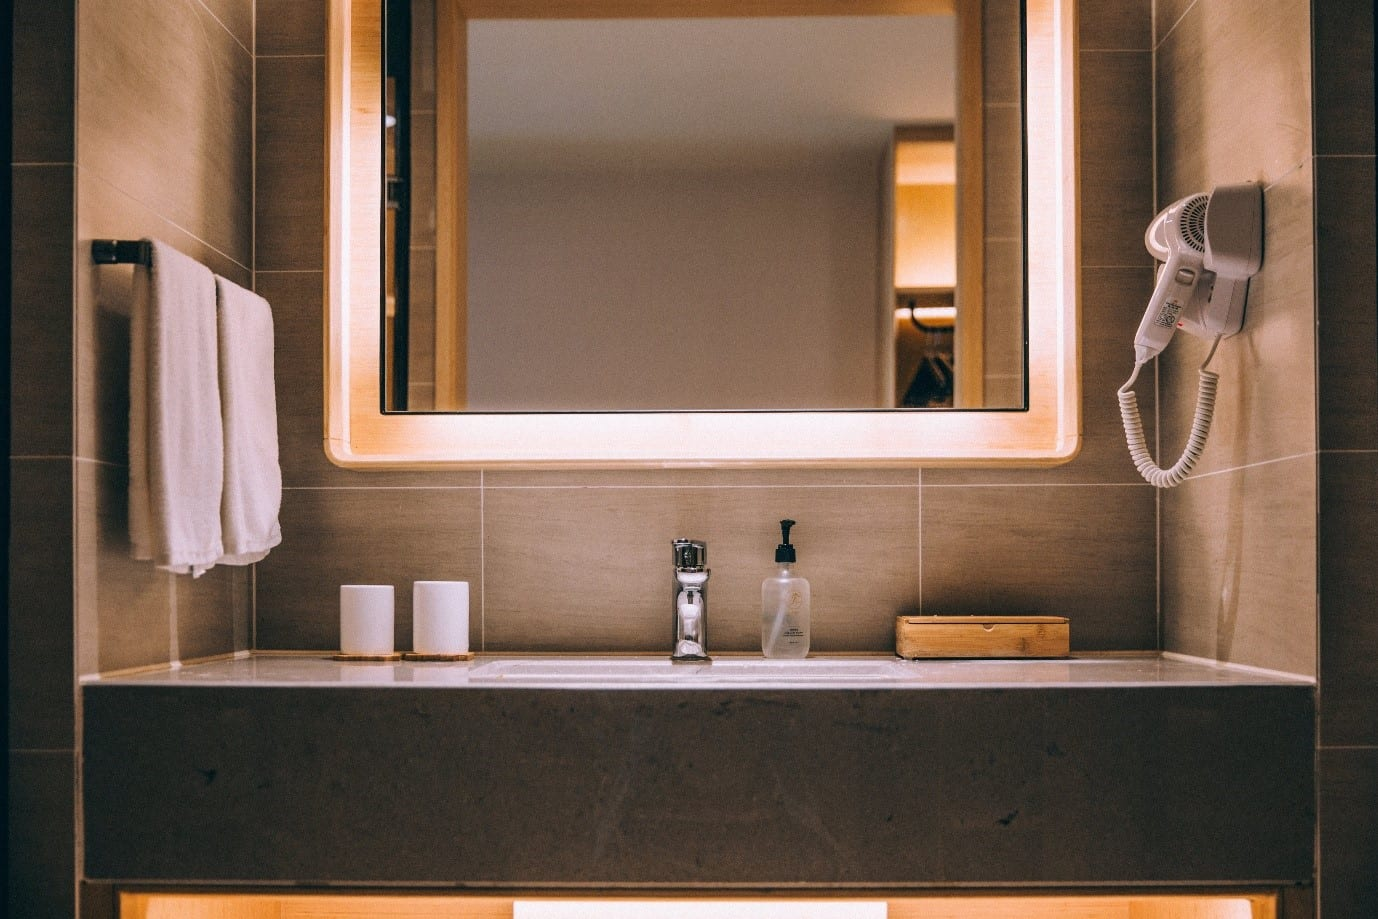 How hoteliers can increase room rates by improving customer facilities